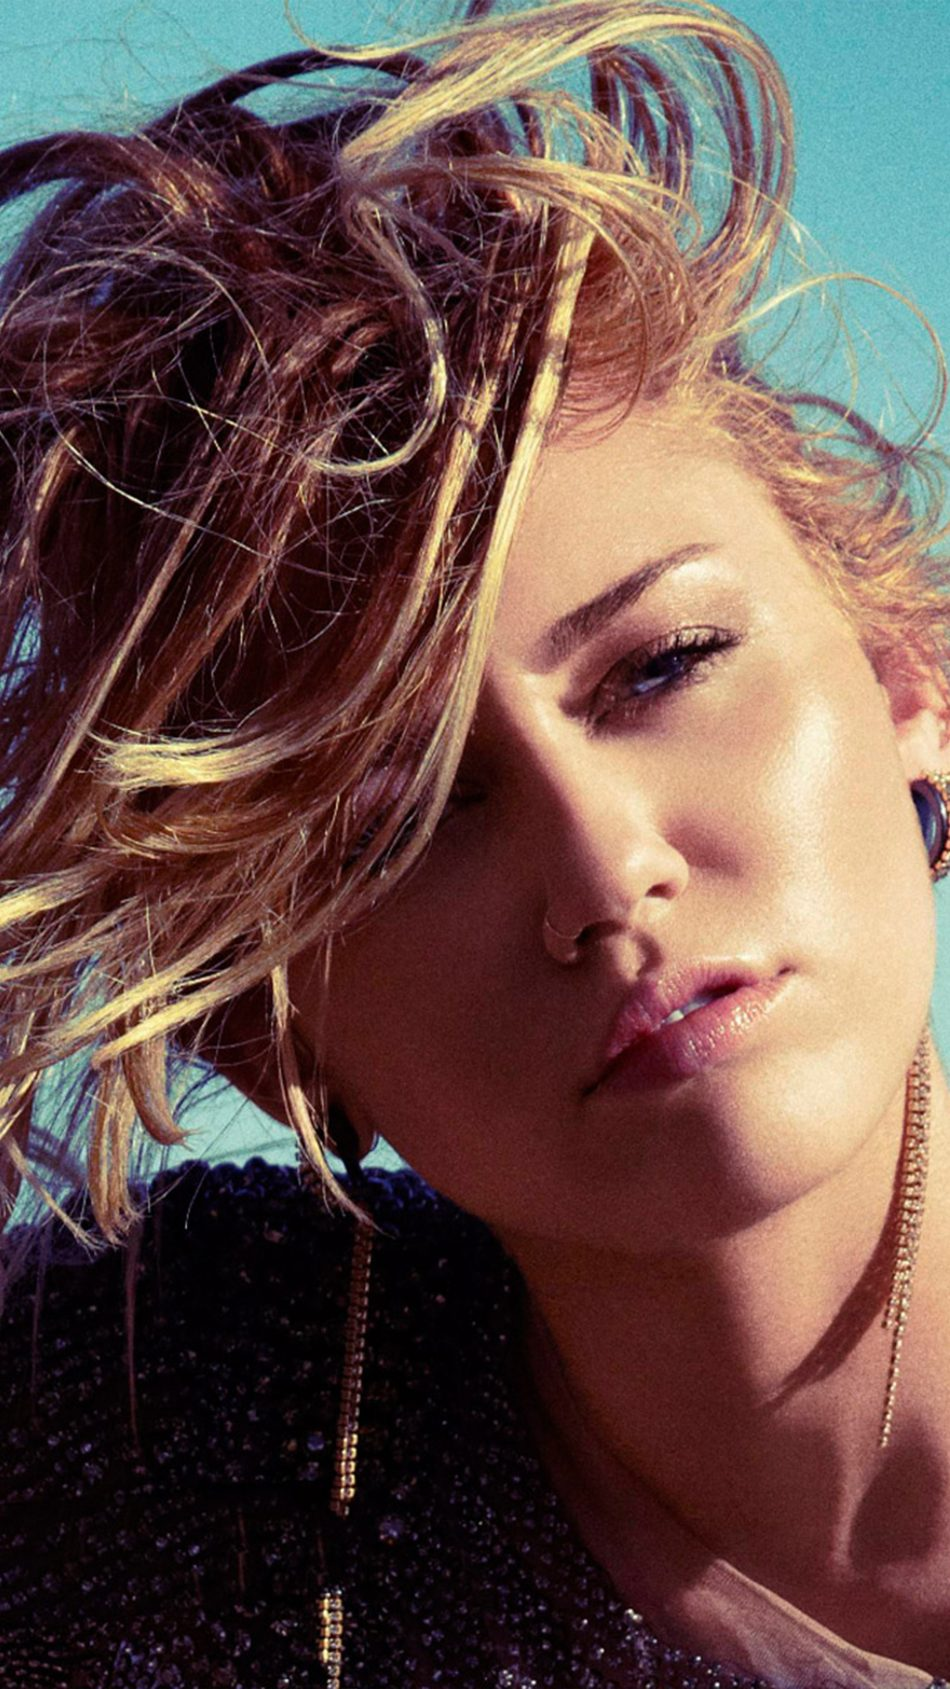 Miley Cyrus , HD Wallpaper & Backgrounds